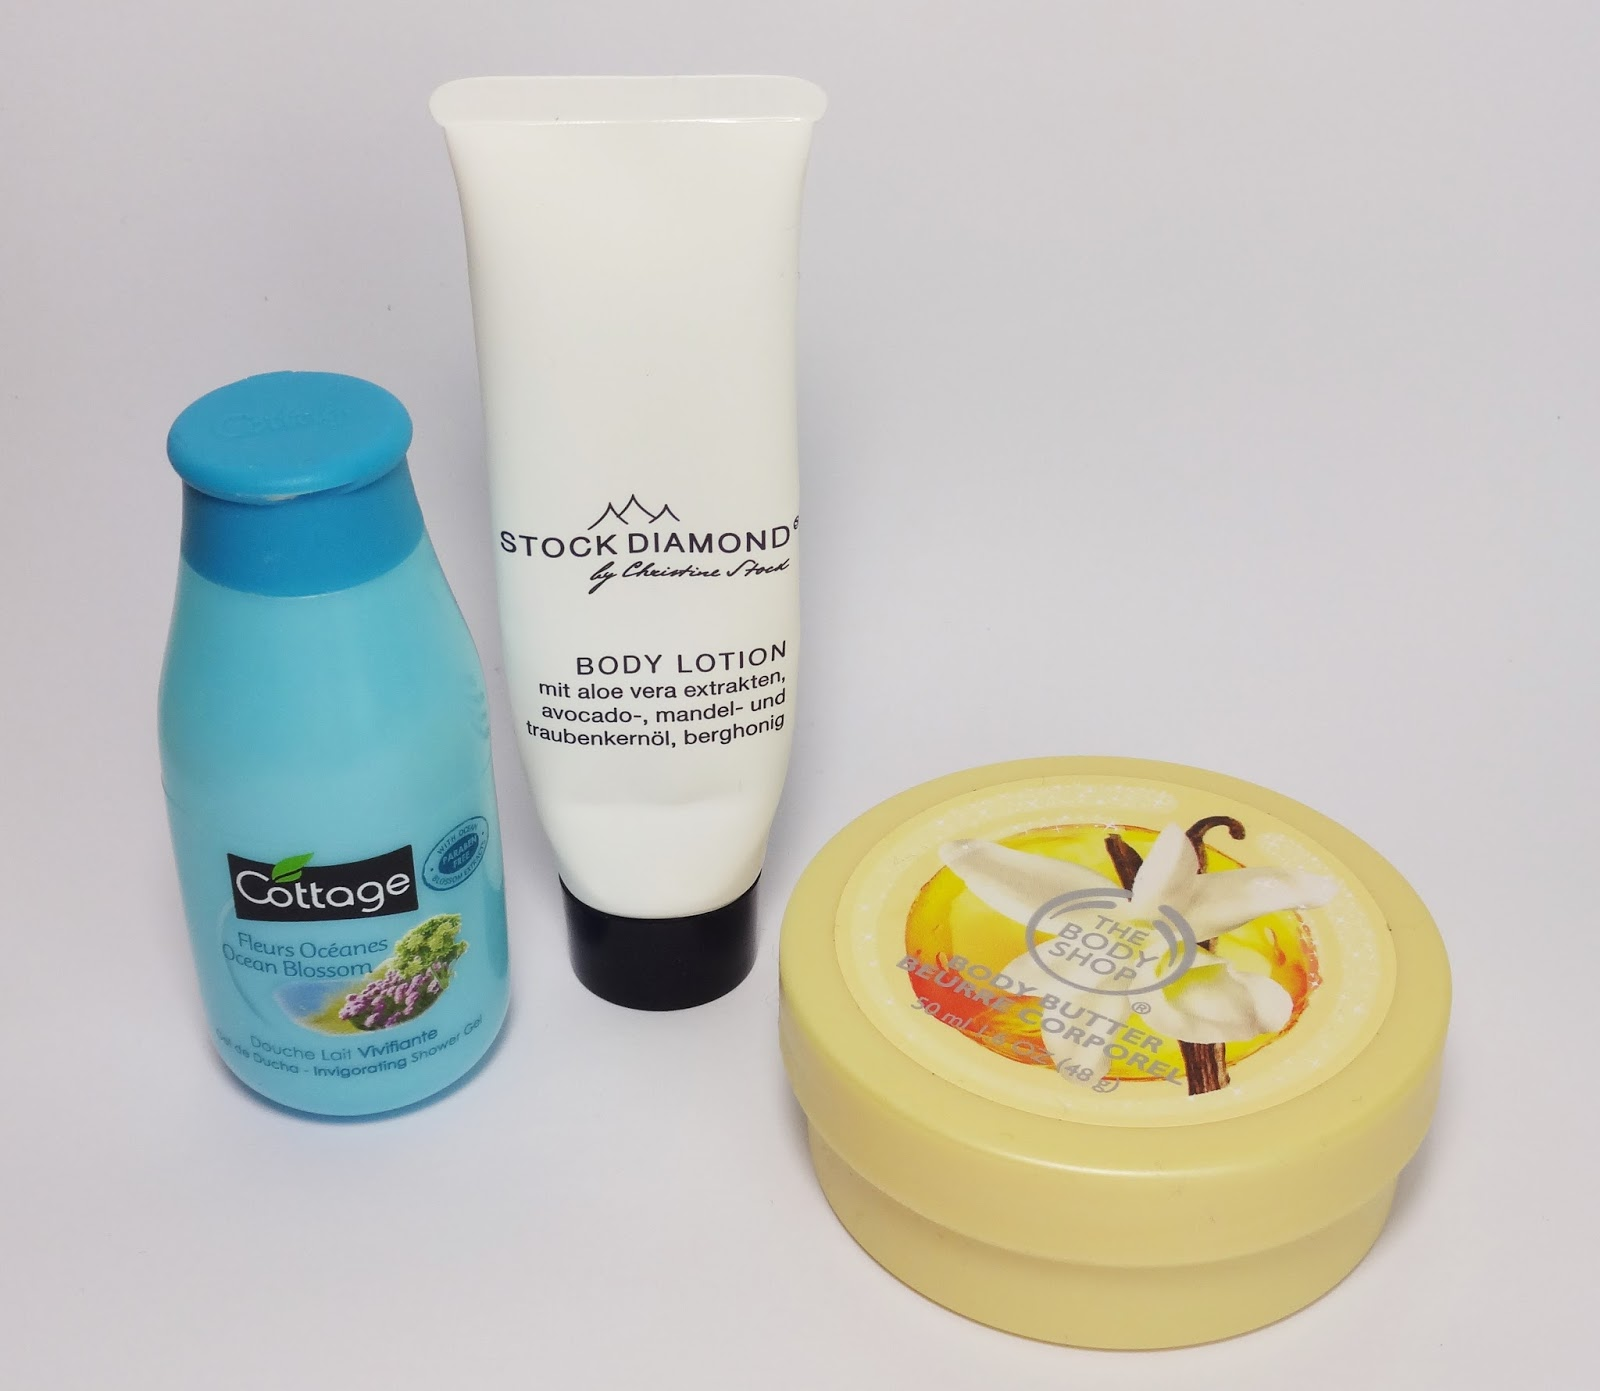 Cottage, Stock Diamond, The Body Shop